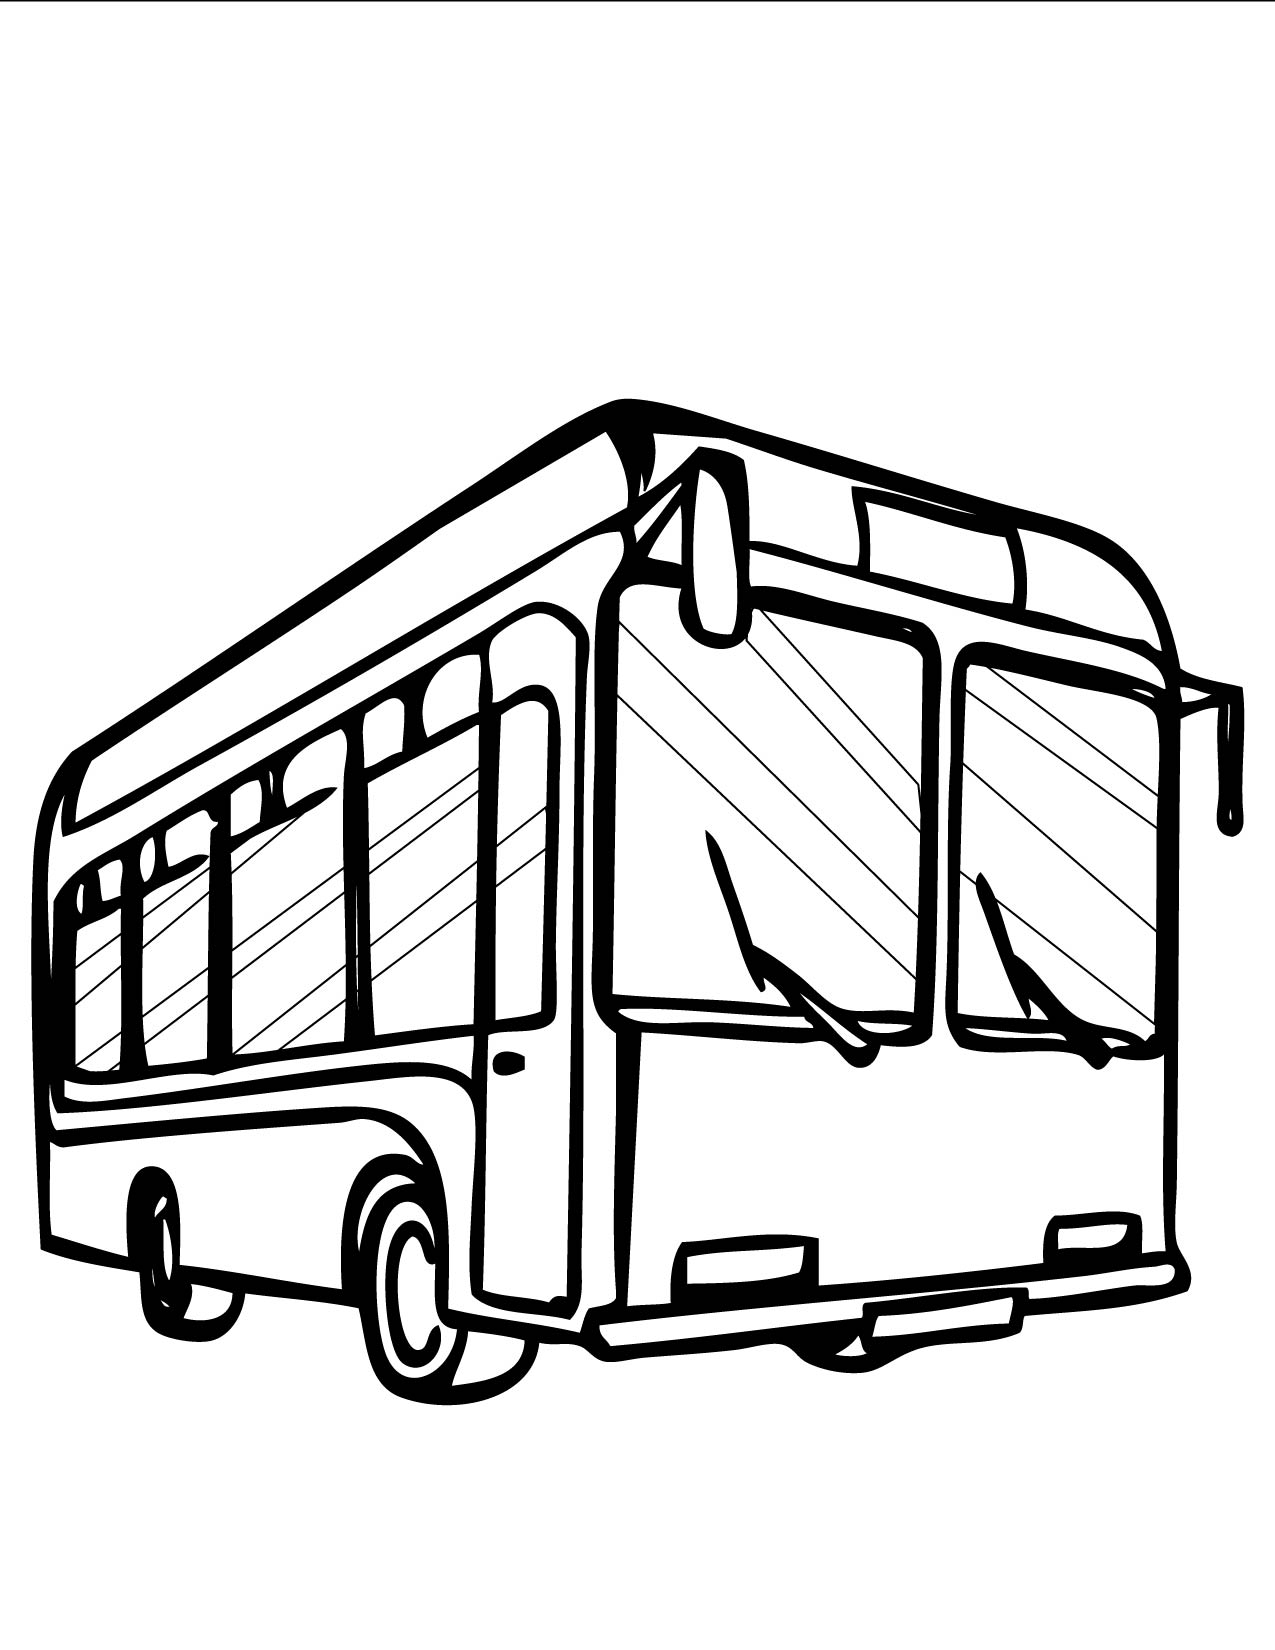 bus coloring pages - photo#23